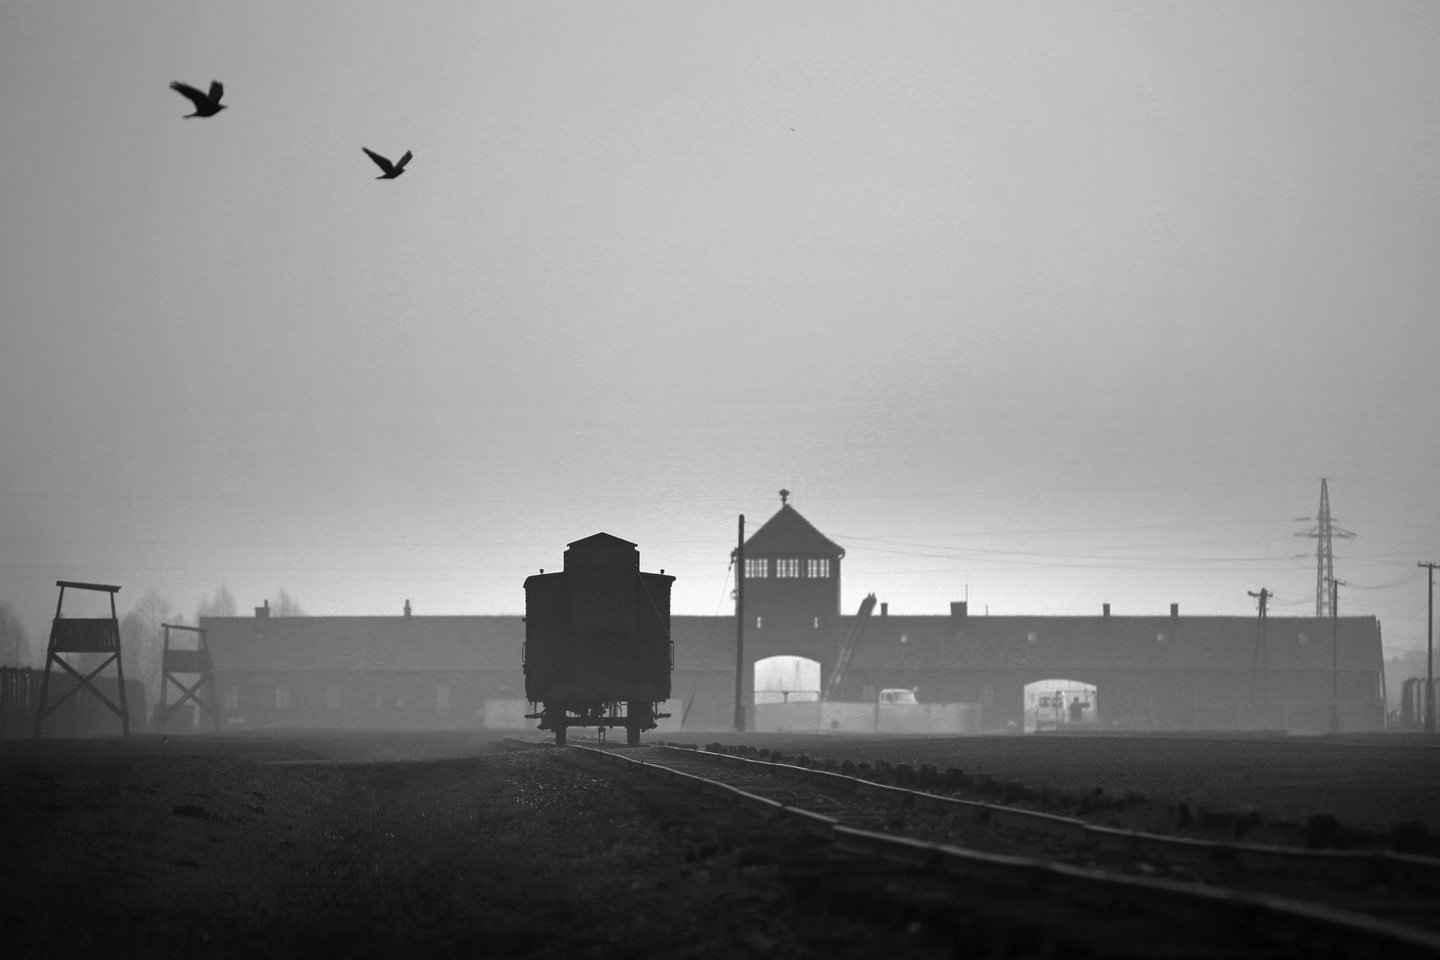 OSWIECIM, POLAND - NOVEMBER 13: The railway track leads to the infamous 'Death Gate' at the Auschwitz II Birkenau extermination camp on November 13, 2014 in Oswiecim, Poland. Ceremonies marking the 70th anniversary of the liberation of the camp by Soviet soldiers are due to take place on January 27, 2015. Auschwitz was a network of concentration camps built and operated in occupied Poland by Nazi Germany during the Second World War. Auschwitz I and nearby Auschwitz II-Birkenau was the extermination camp where an estimated 1.1 million people, mostly Jews from across Europe, were killed in gas chambers or from systematic starvation, forced labour, disease and medical experiments. (Photo by Christopher Furlong/Getty Images)